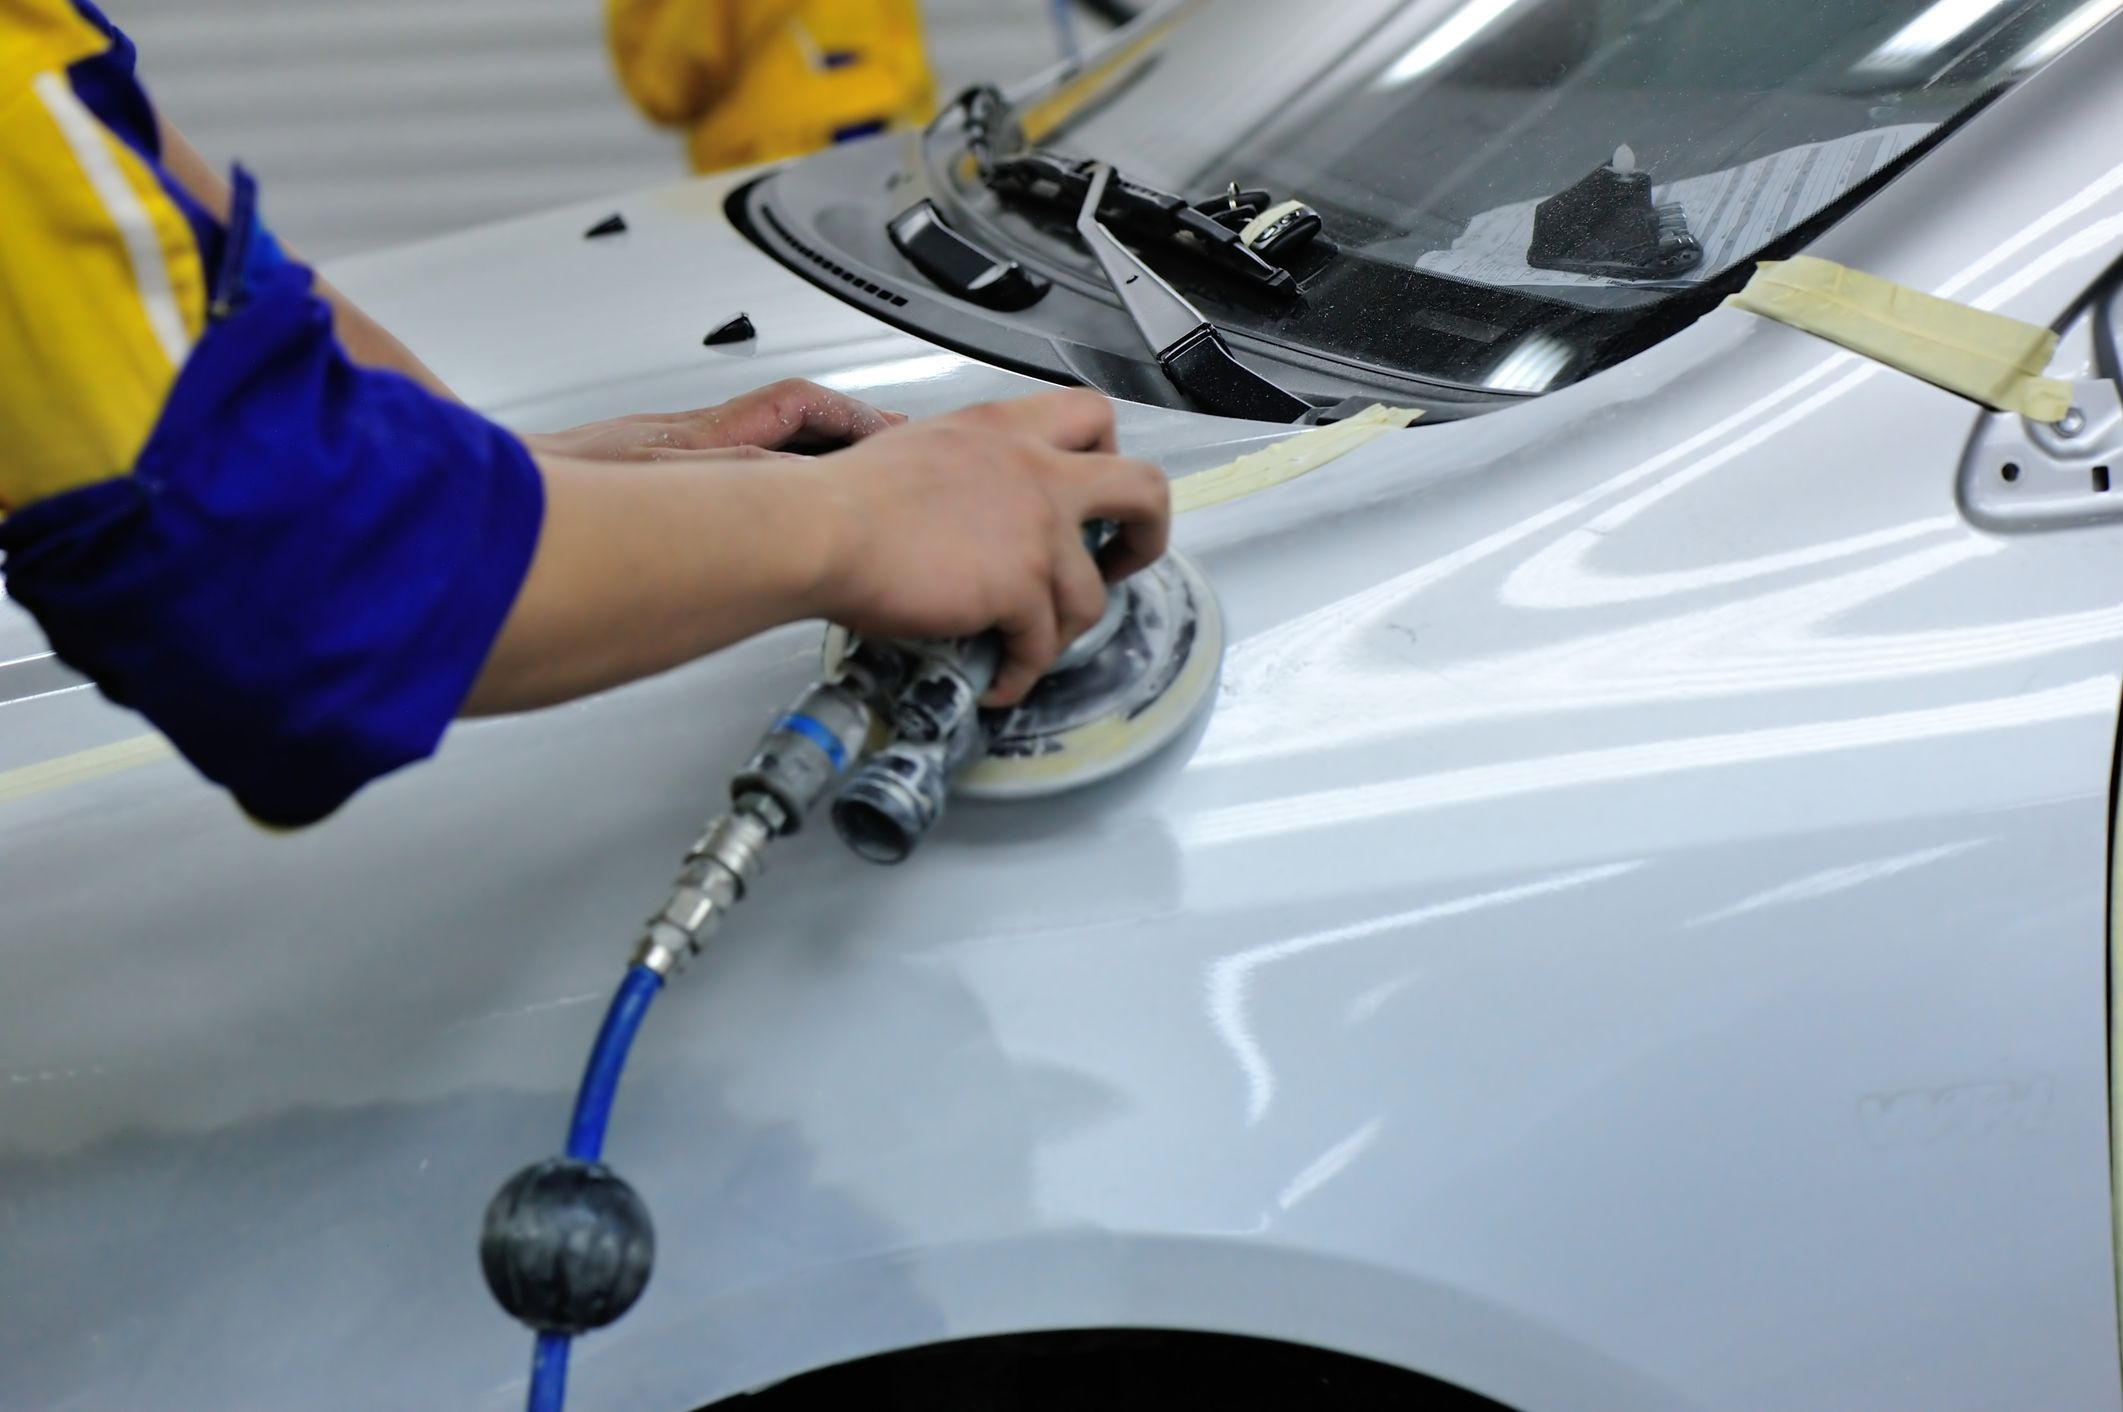 Looking For An Audi Body Repair Shop Near Burlingame European Collision Center Is The Go To Auto Body Repair Shops Auto Body Repair Auto Body Collision Repair